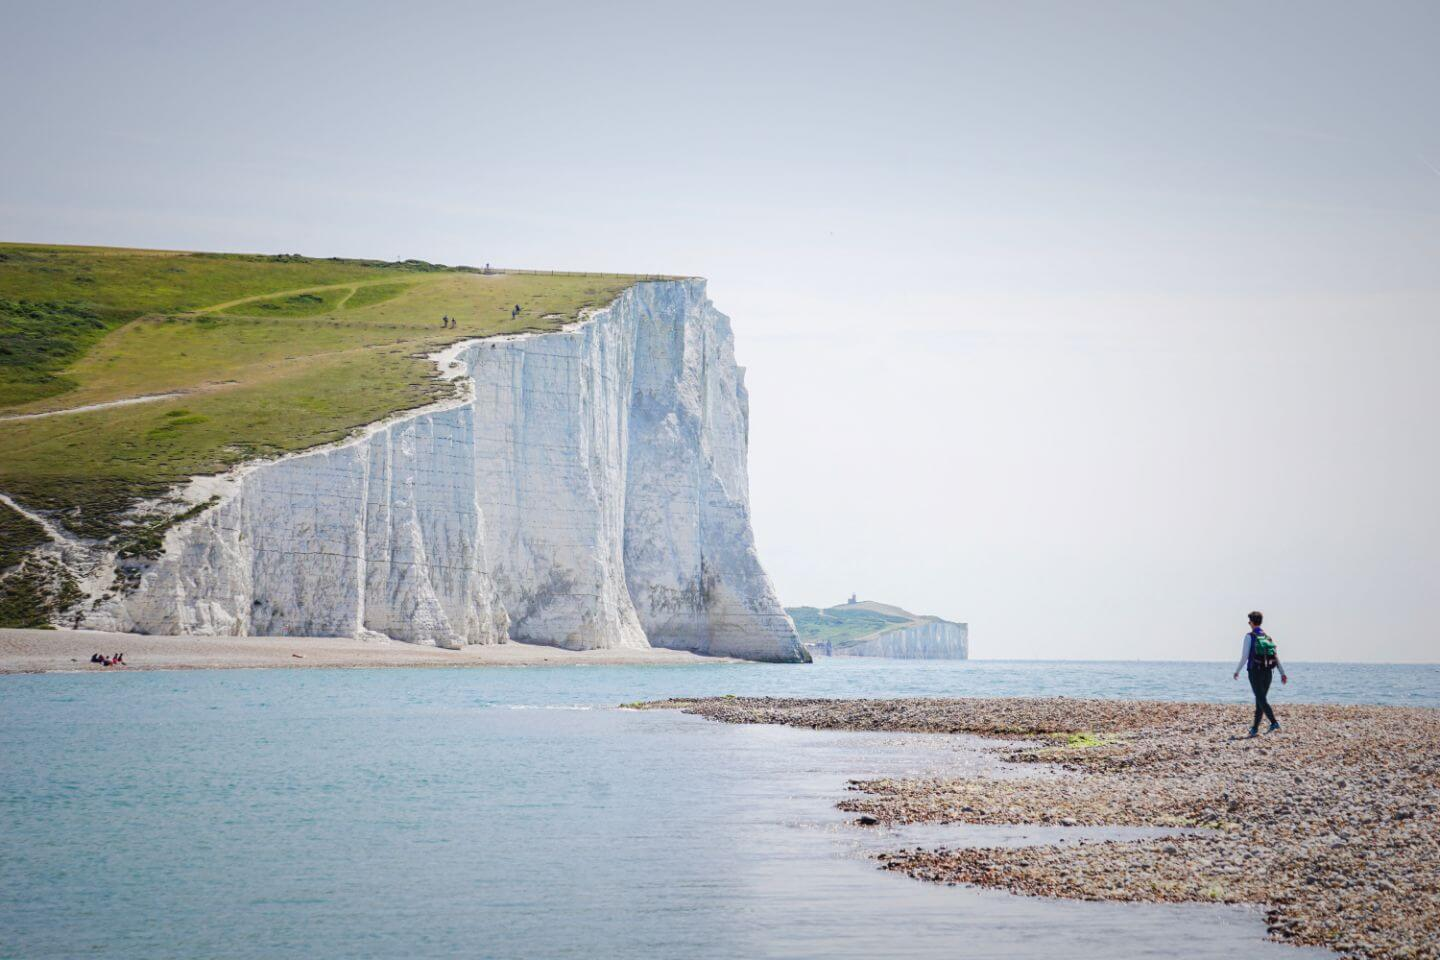 Beach at Cuckmere Haven, Seven Sisters View, England